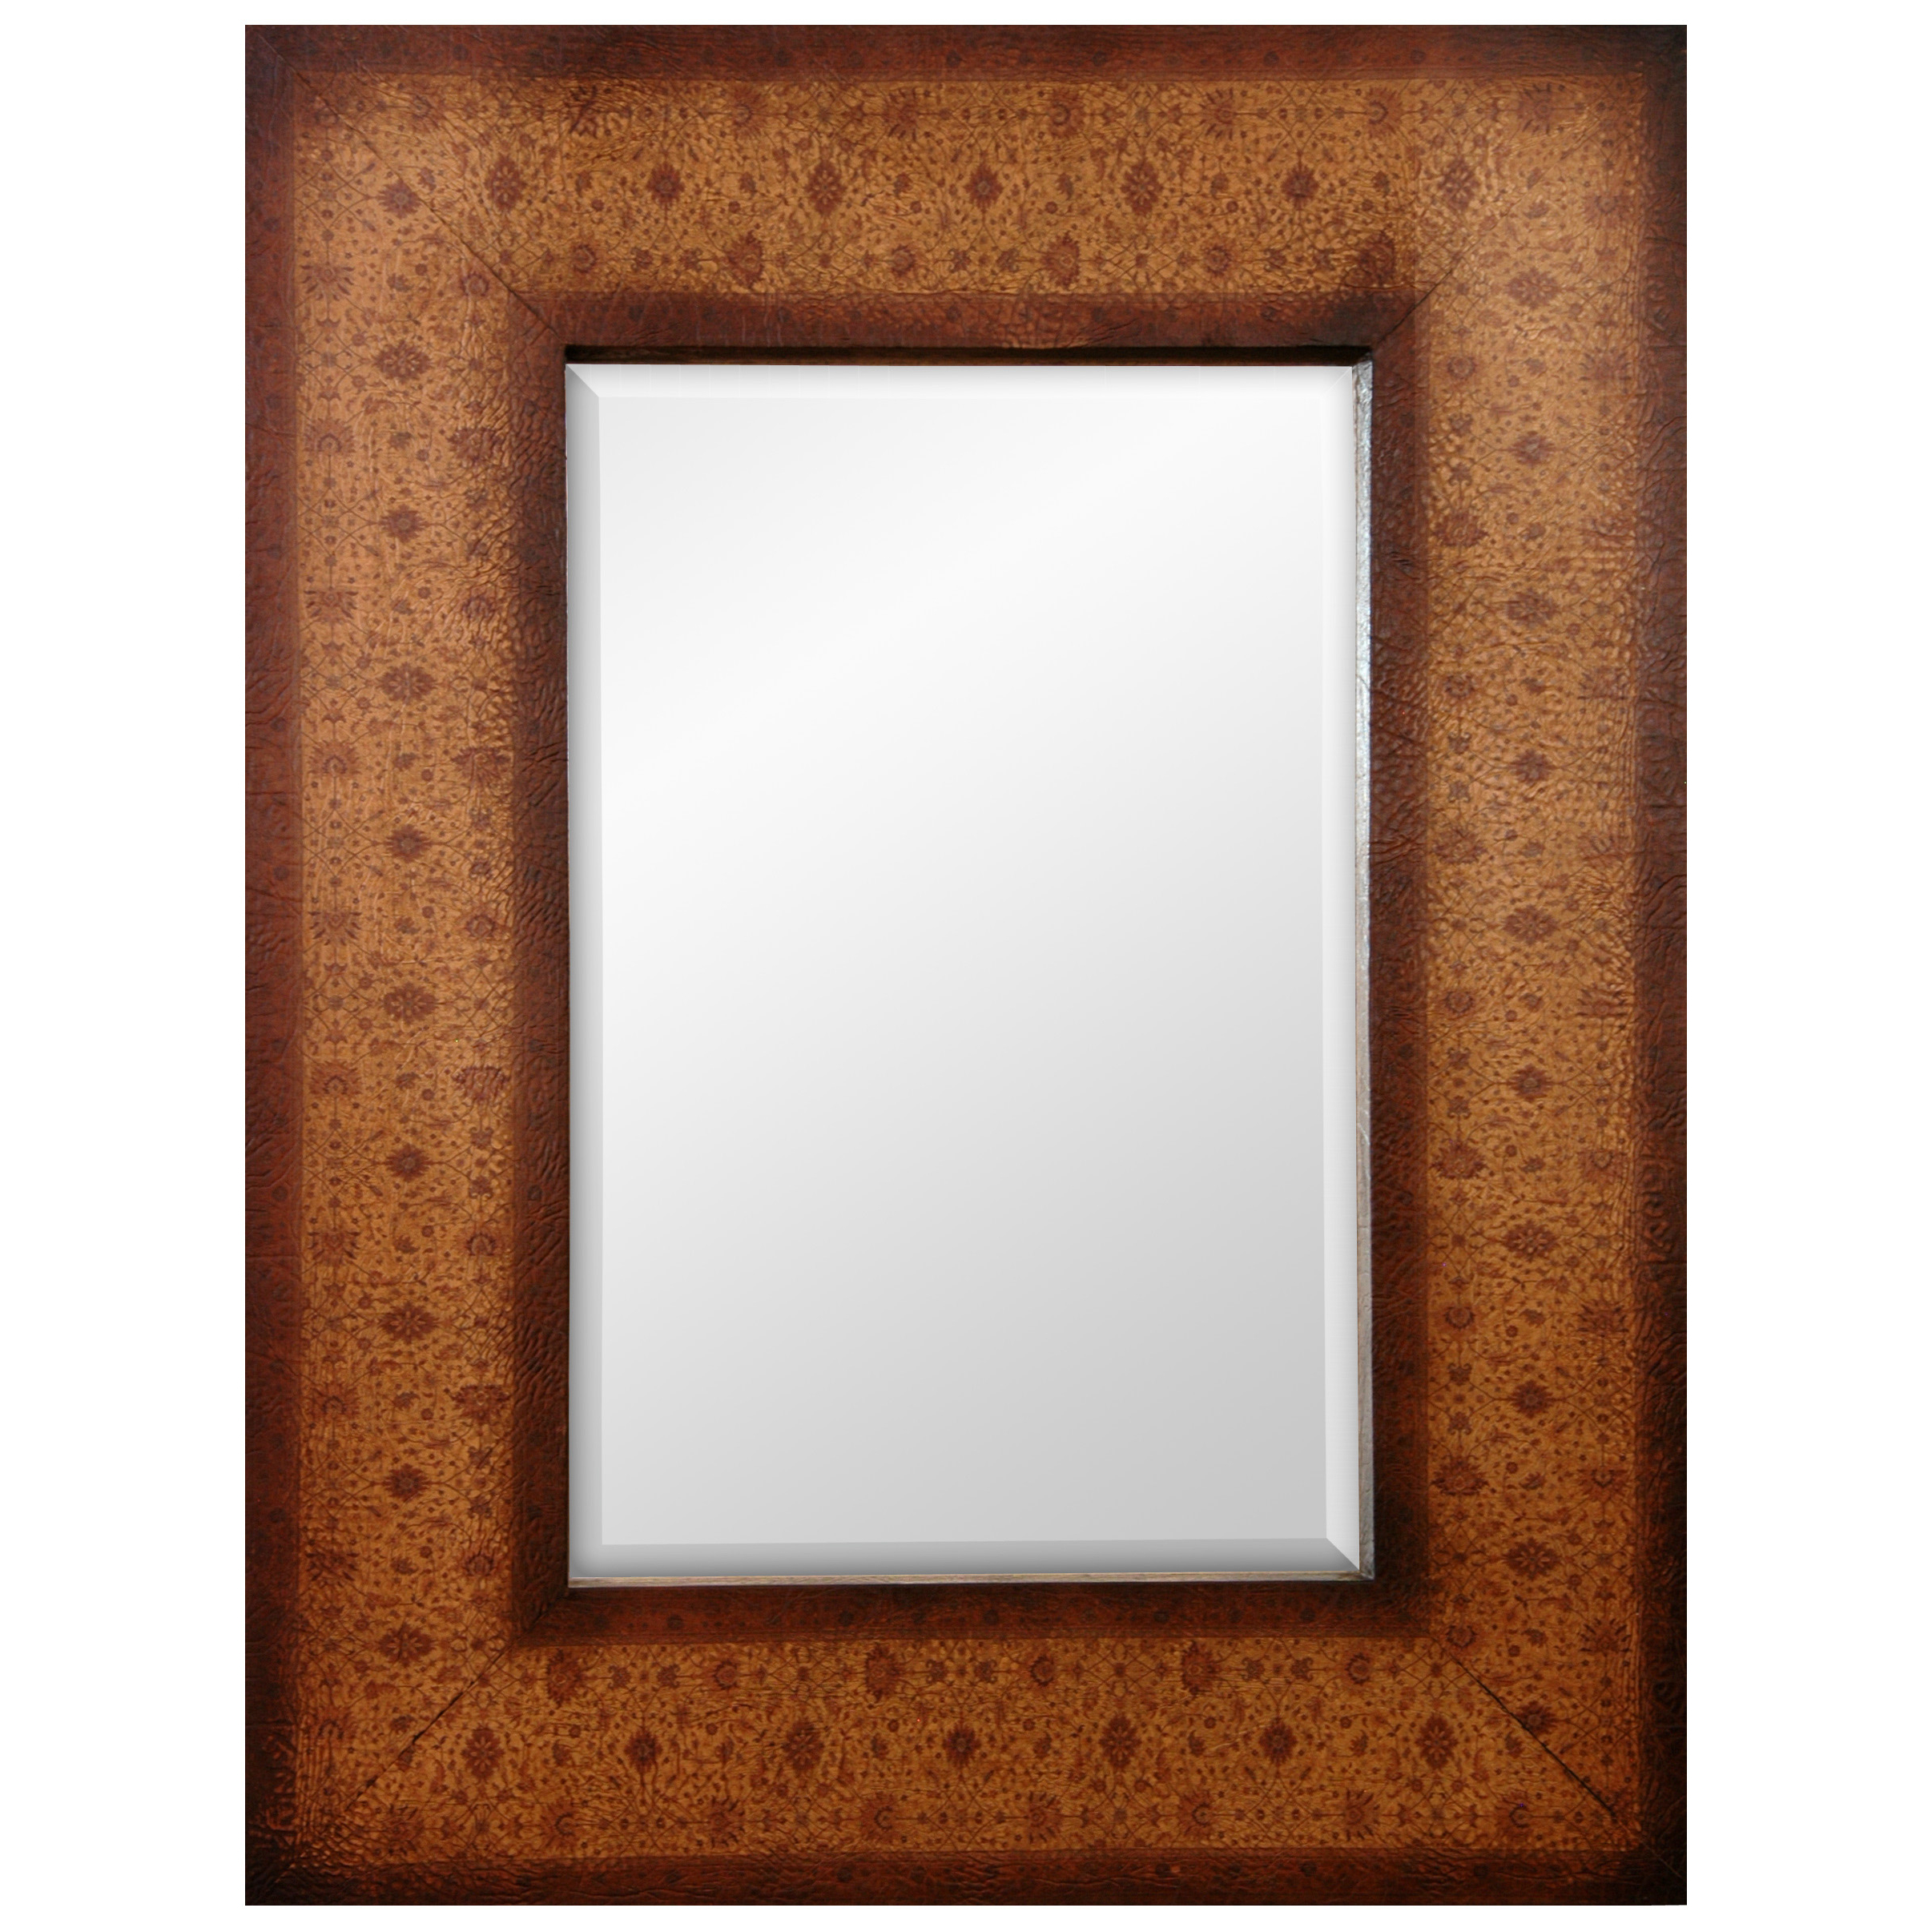 Buy Mirrors Online Within Widely Used Asian Inspired Wall Mirrors (View 2 of 20)